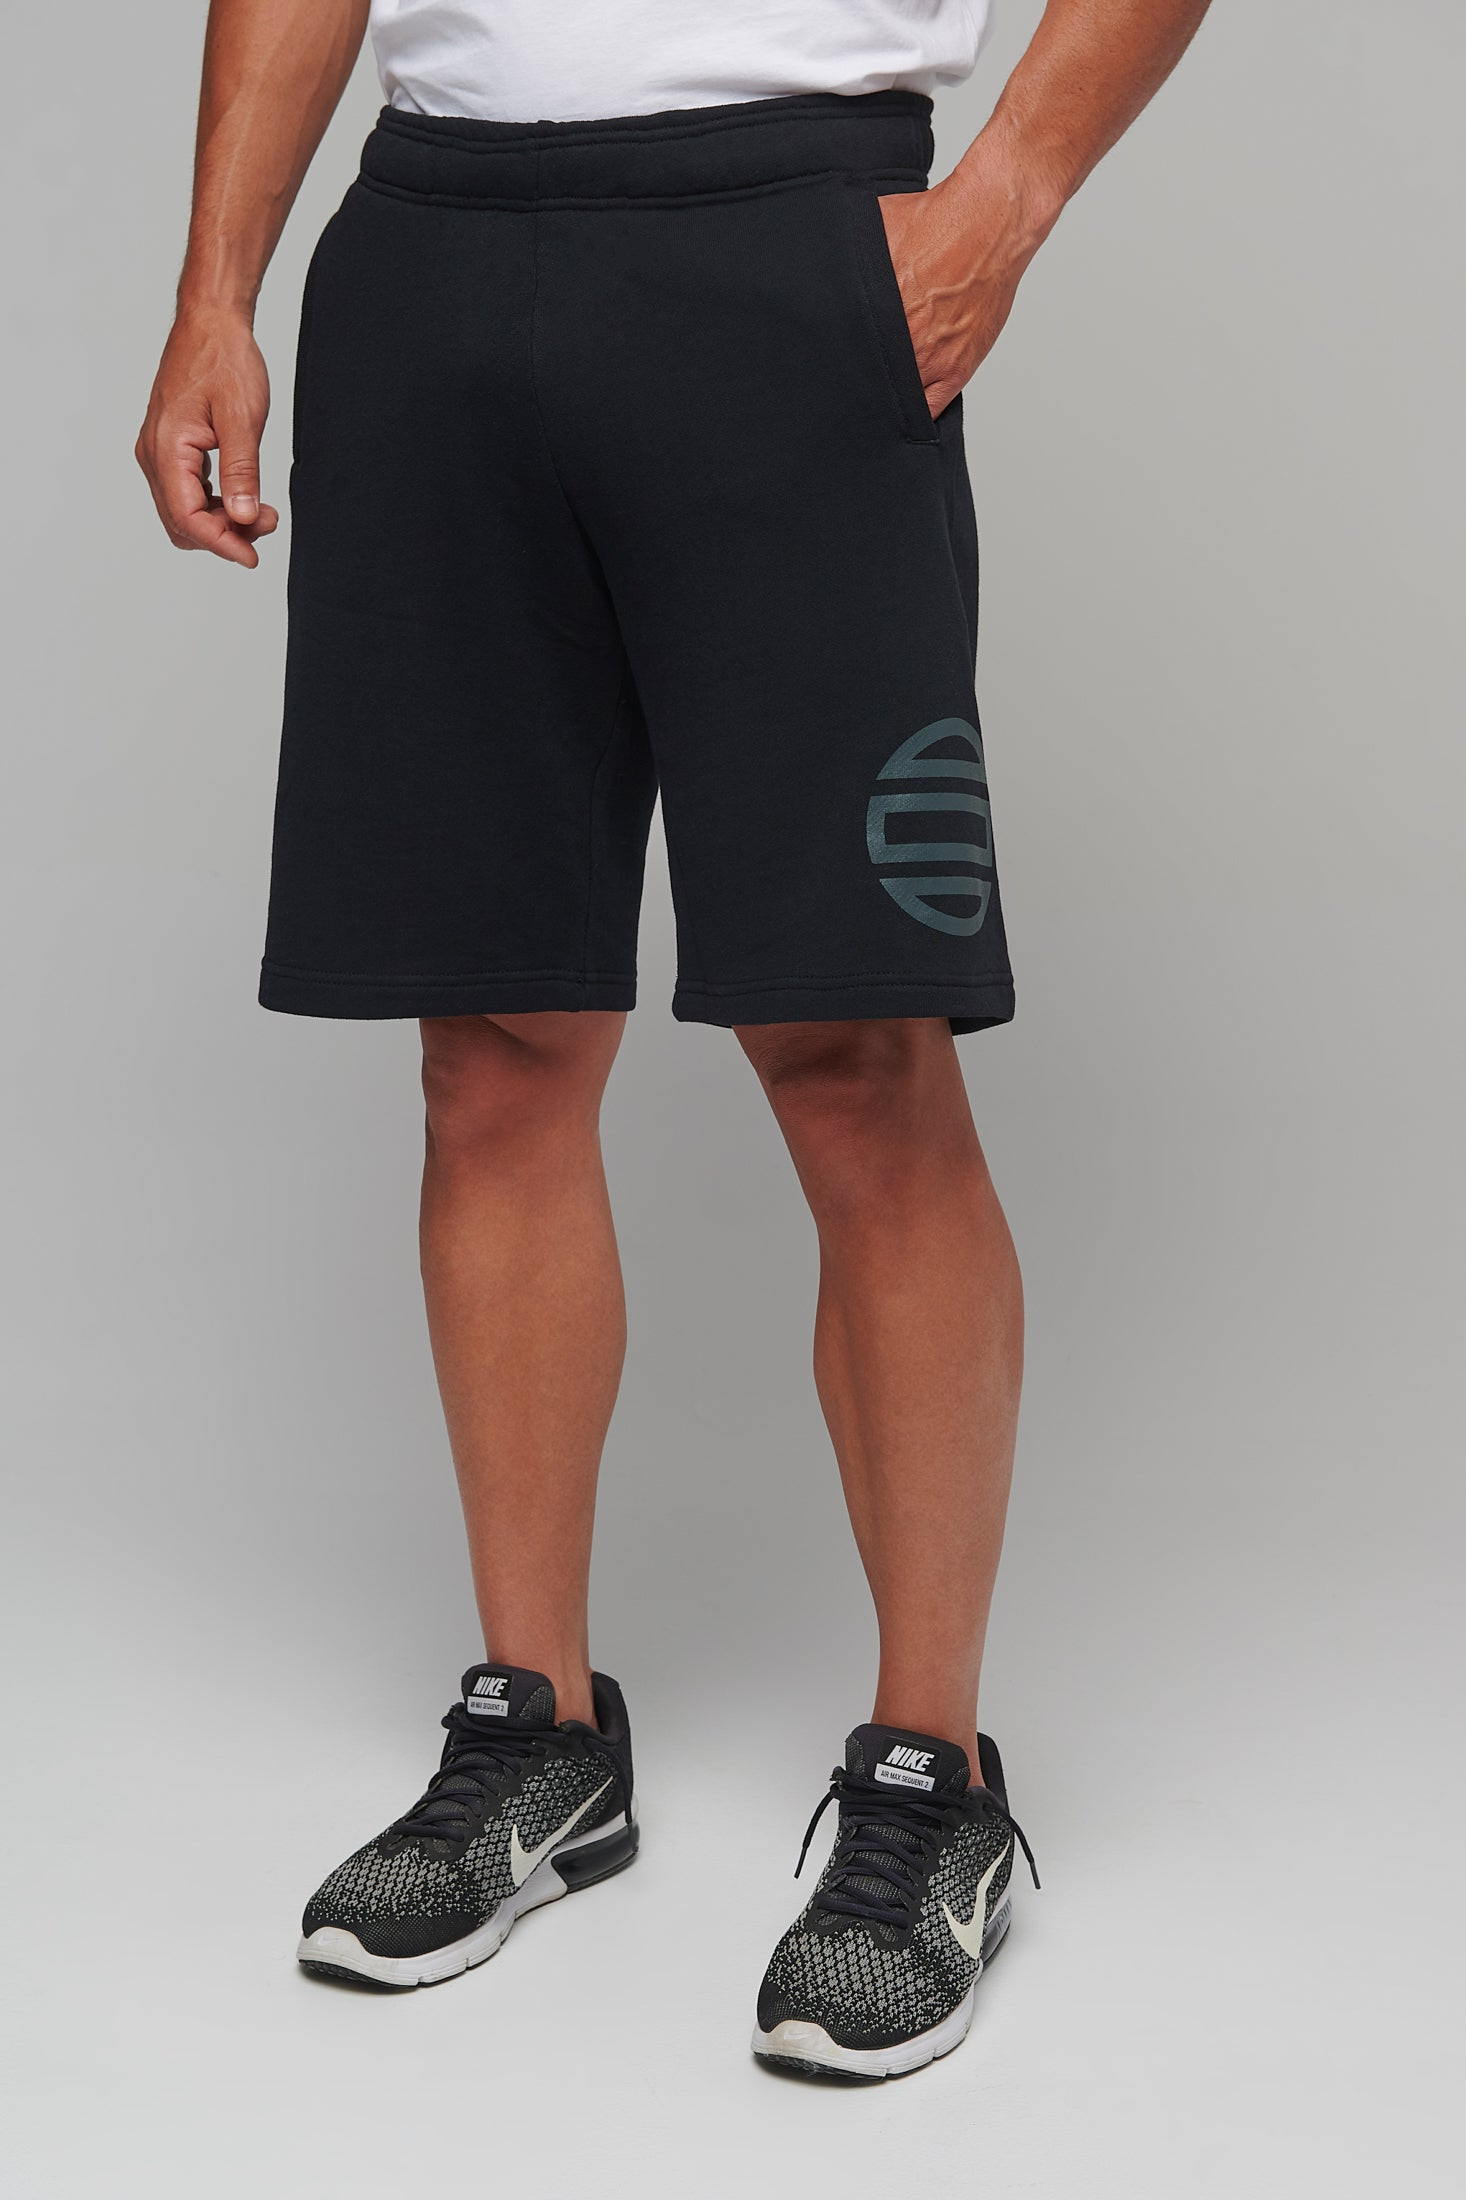 Men's Shorts Theta minimal Logo / Black